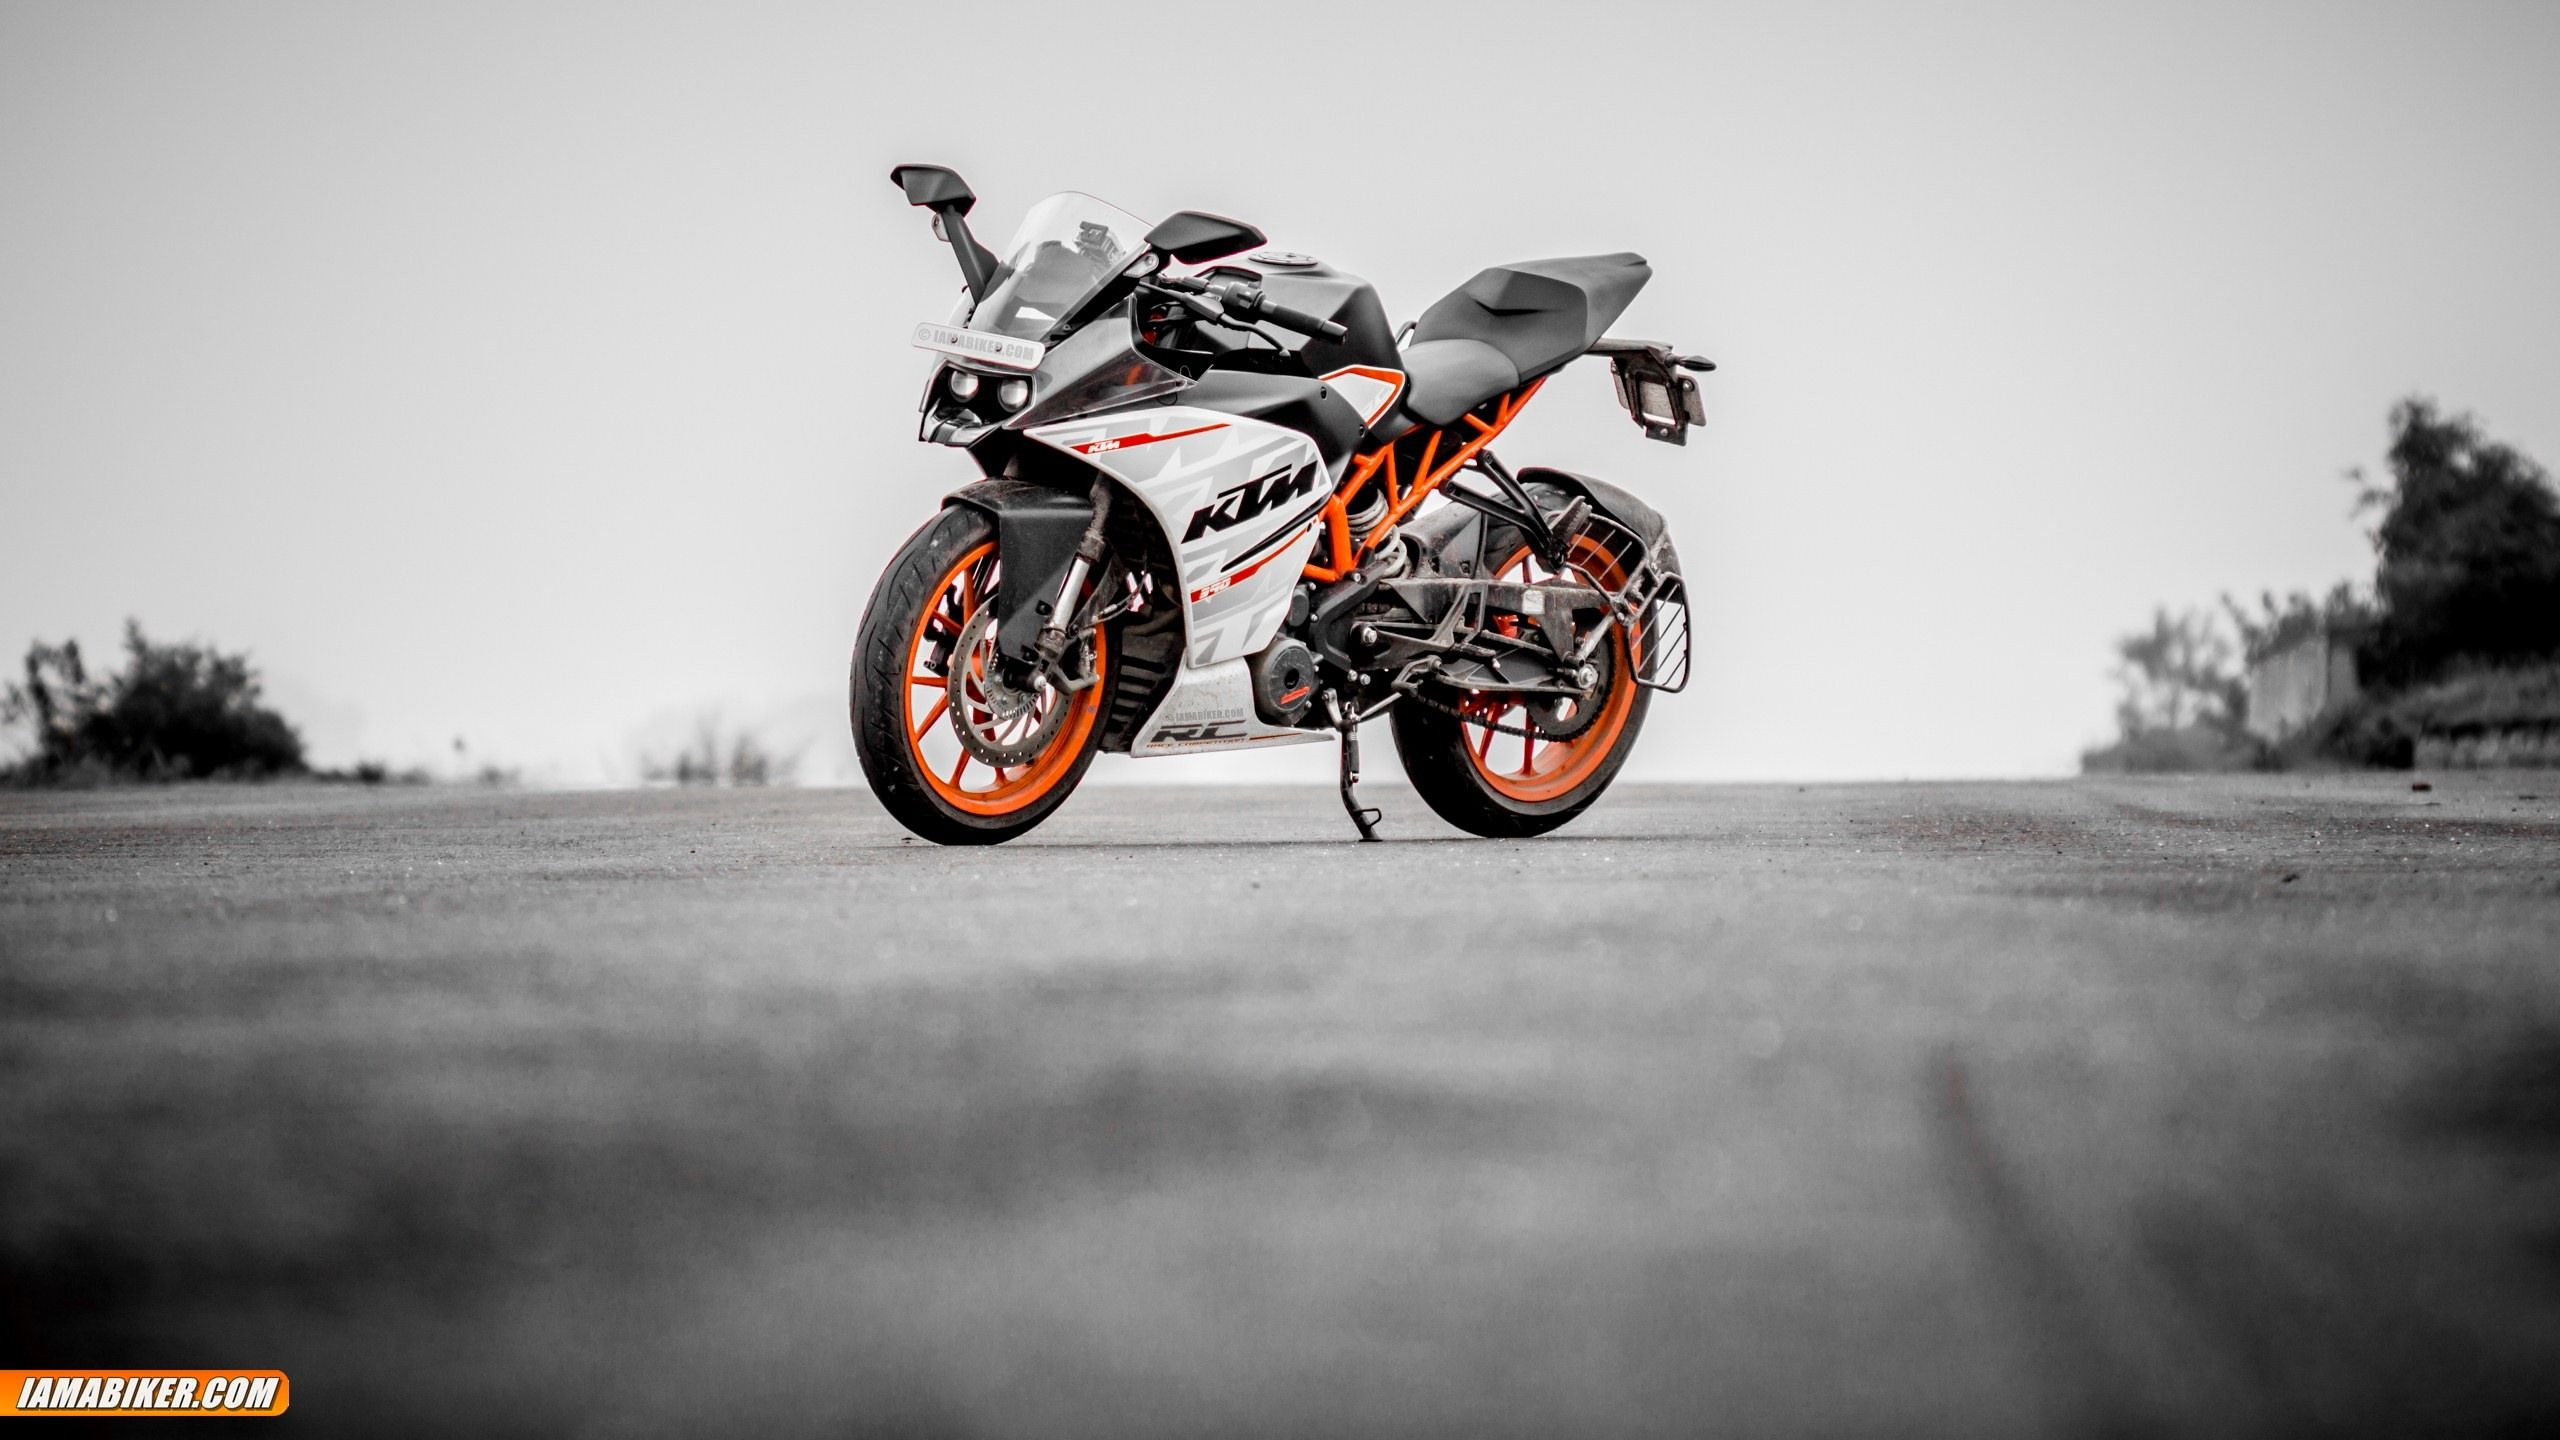 Ktm Rc 390 Wallpapers Iamabiker Motorcycle Wallpapers Ktm Rc